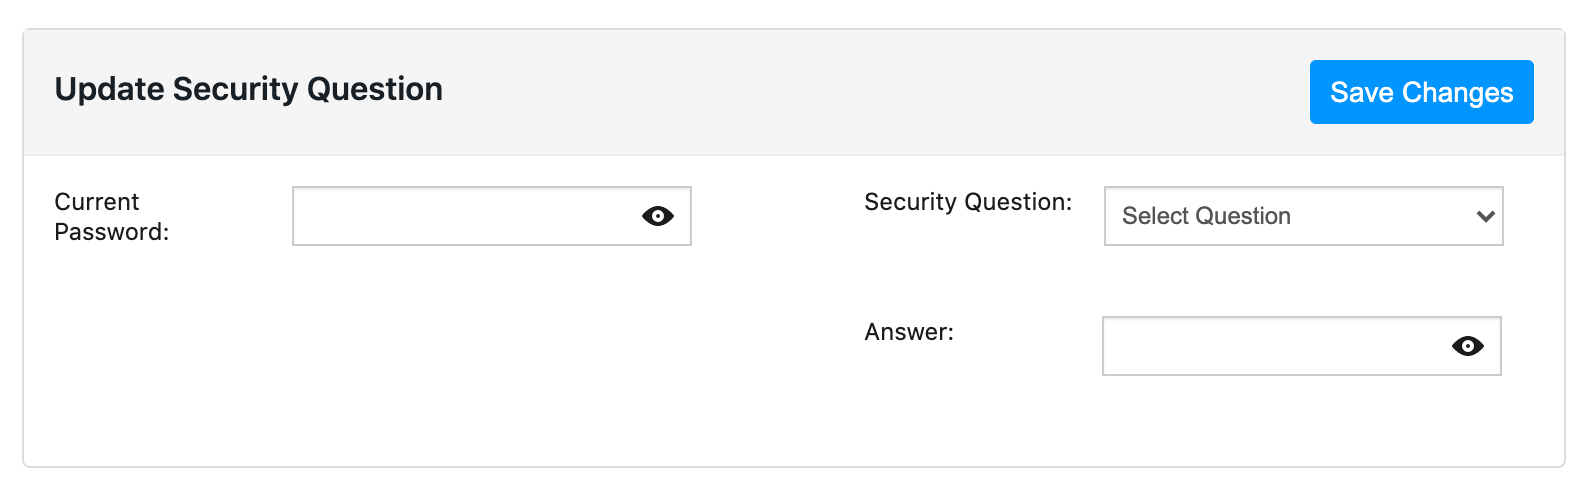 securityquestion.png